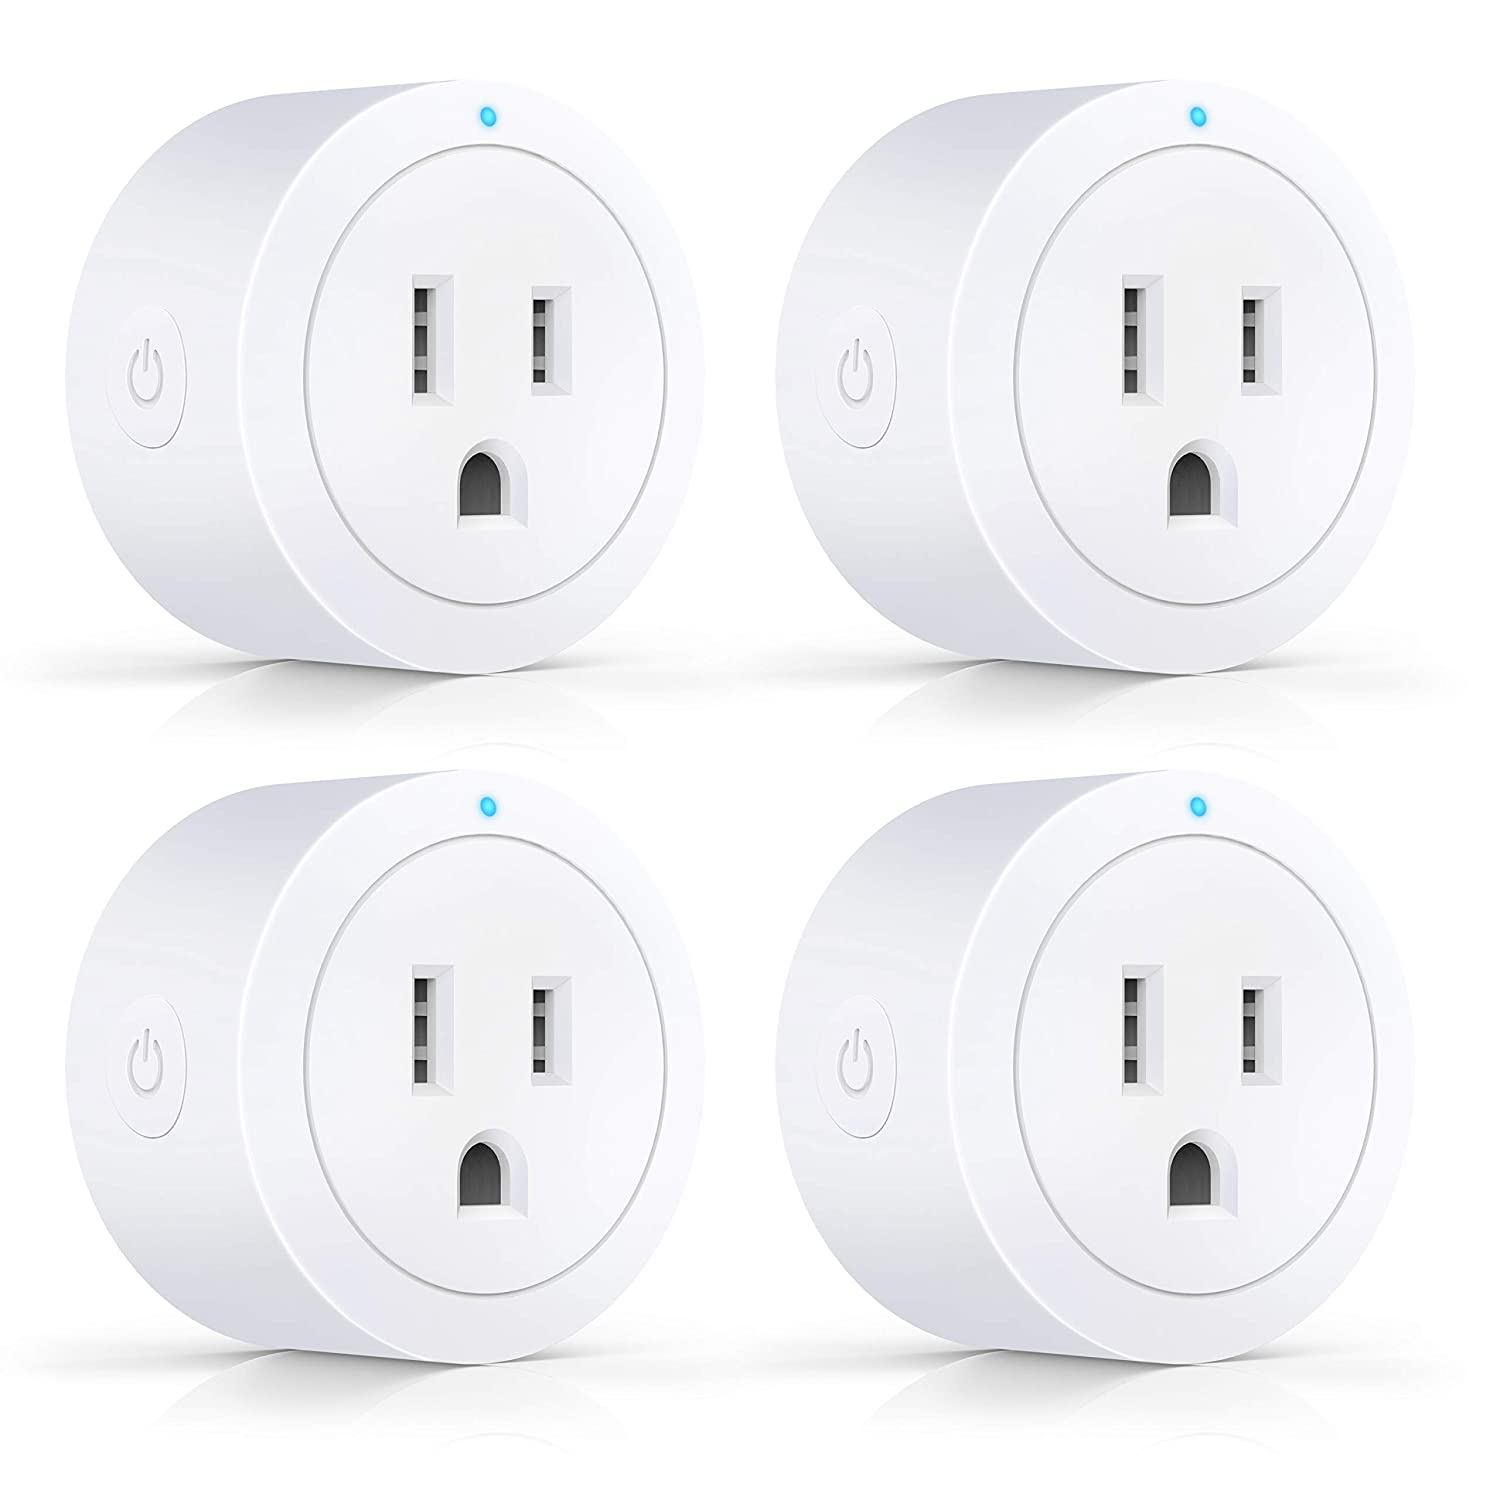 Esicoo Wi-Fi Smart Plug Outlet 4 Pack,Timer Mini Socket Compatible with Alexa Google Home Ifttt,No Hub Required Control Your Devices from Anywhere